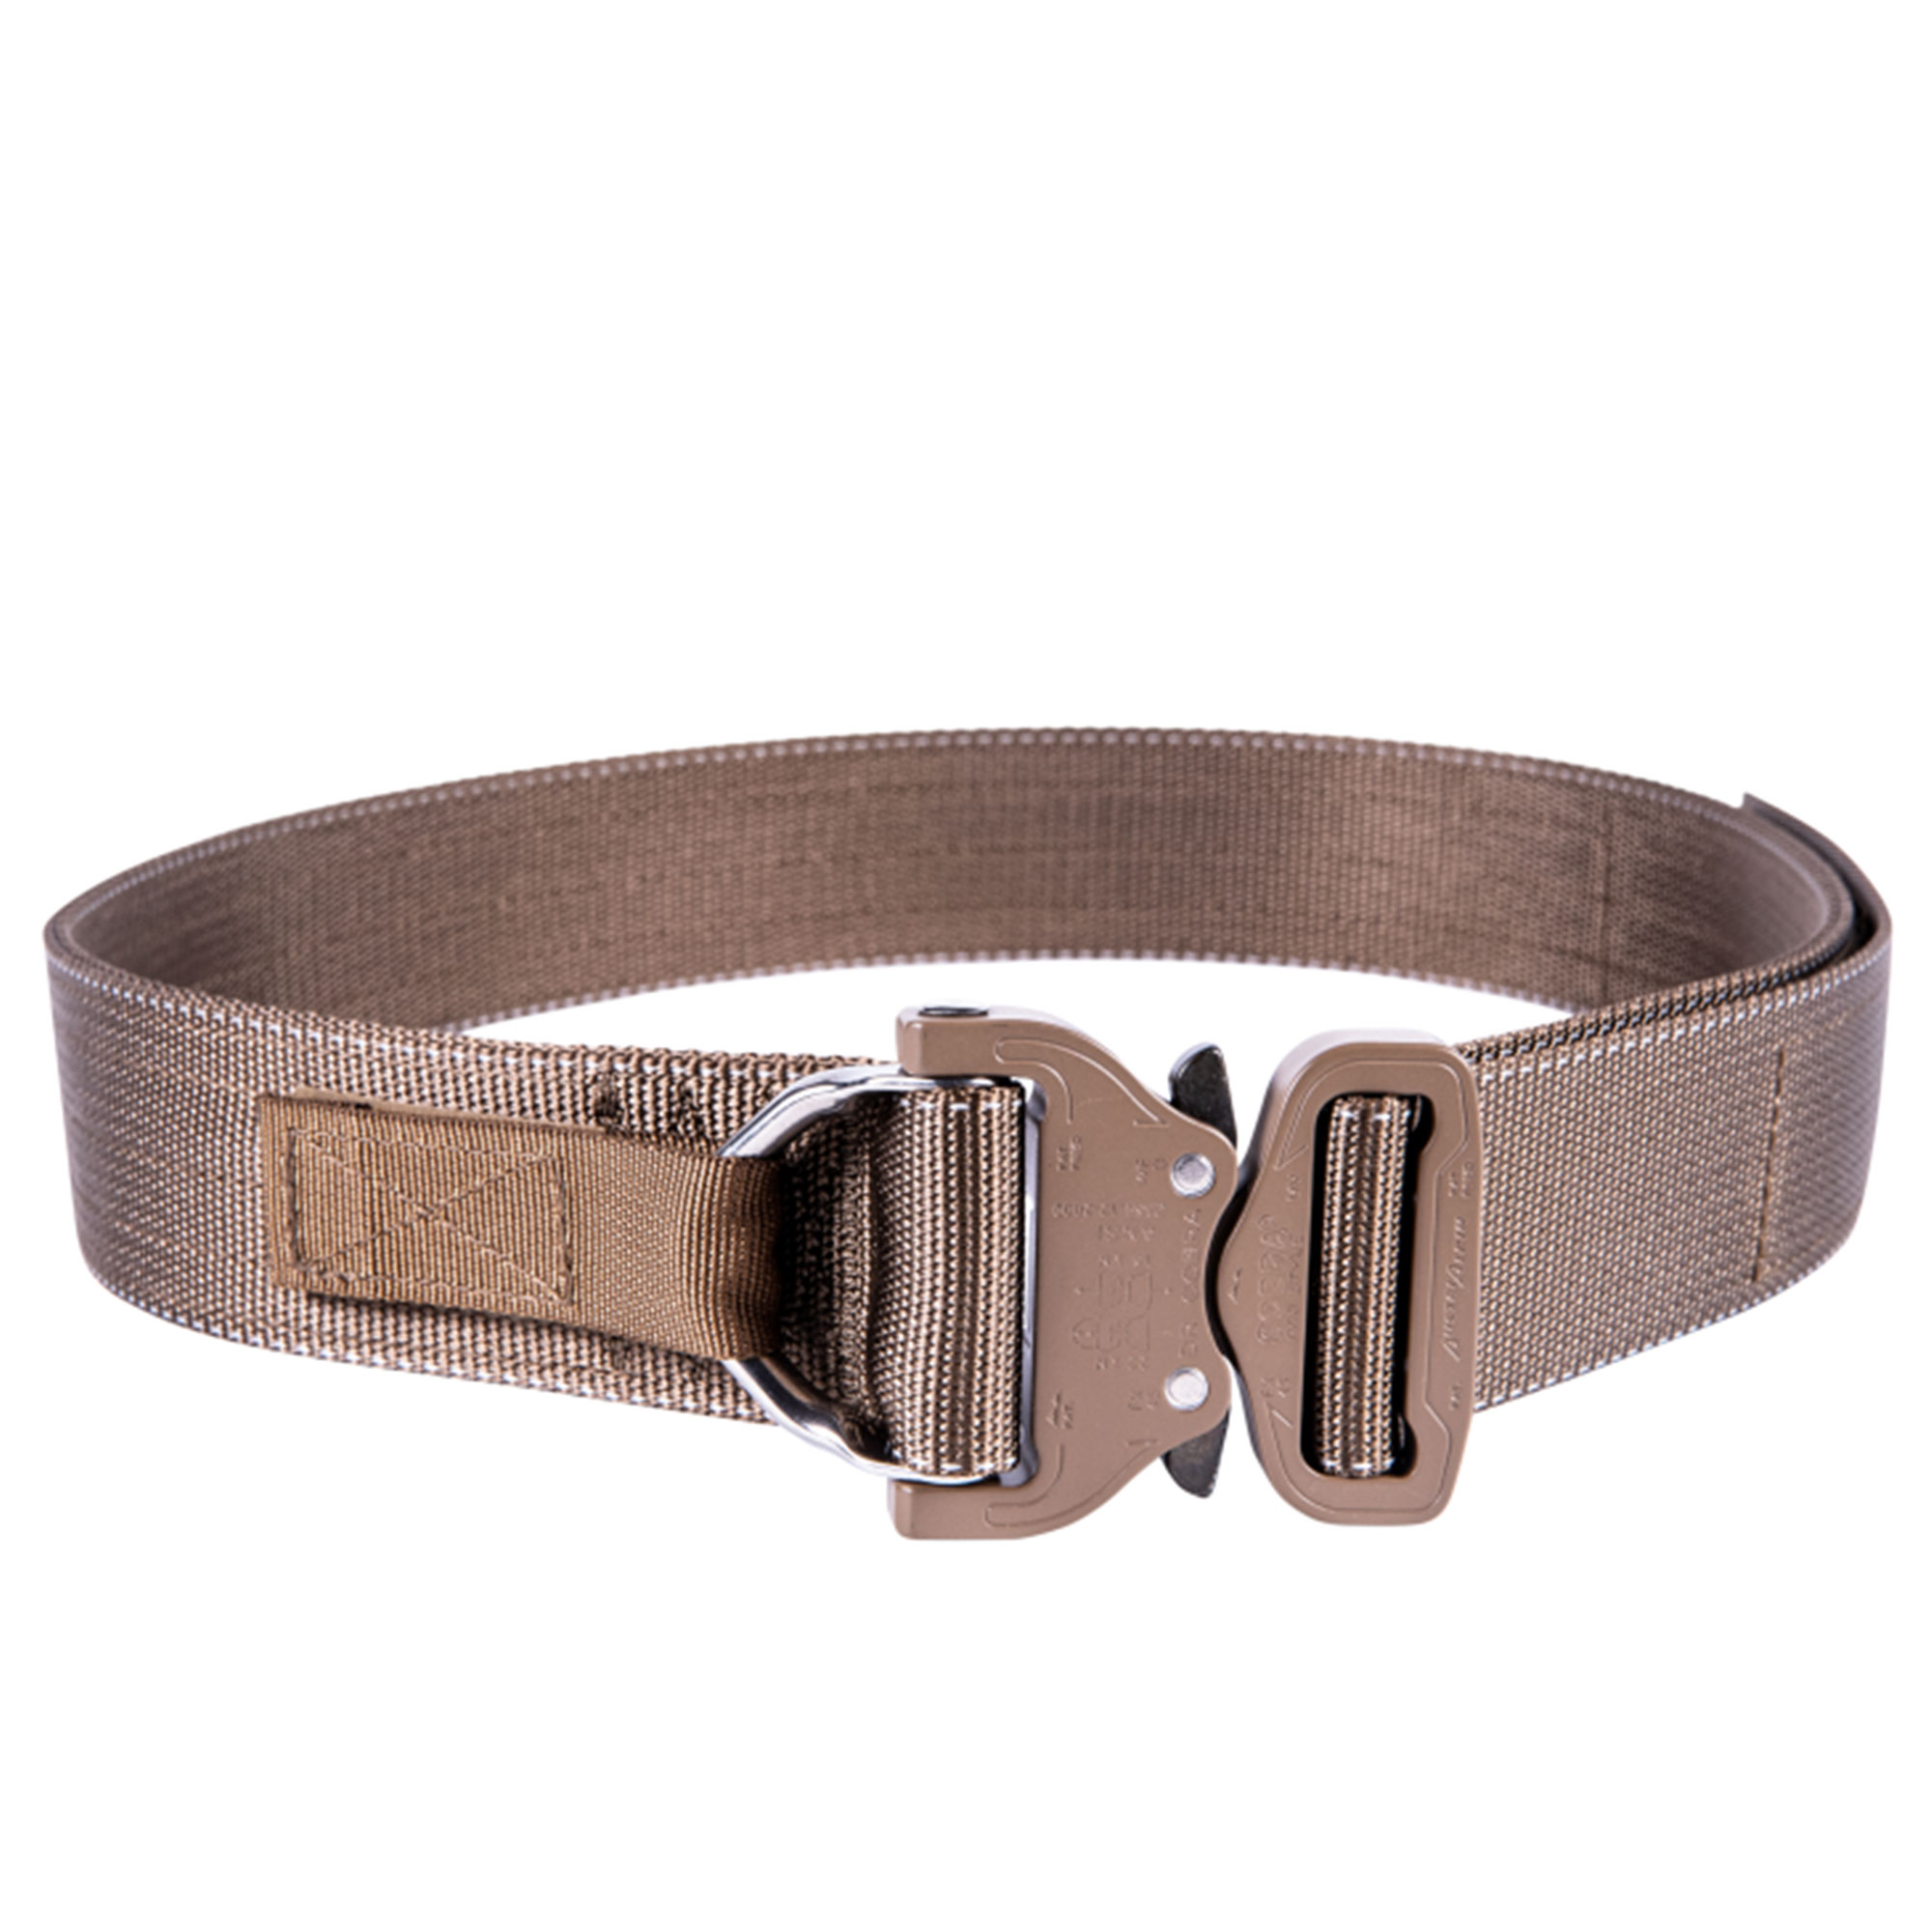 MD-Textil Einsatzgürtel Jed Belt coyote brown